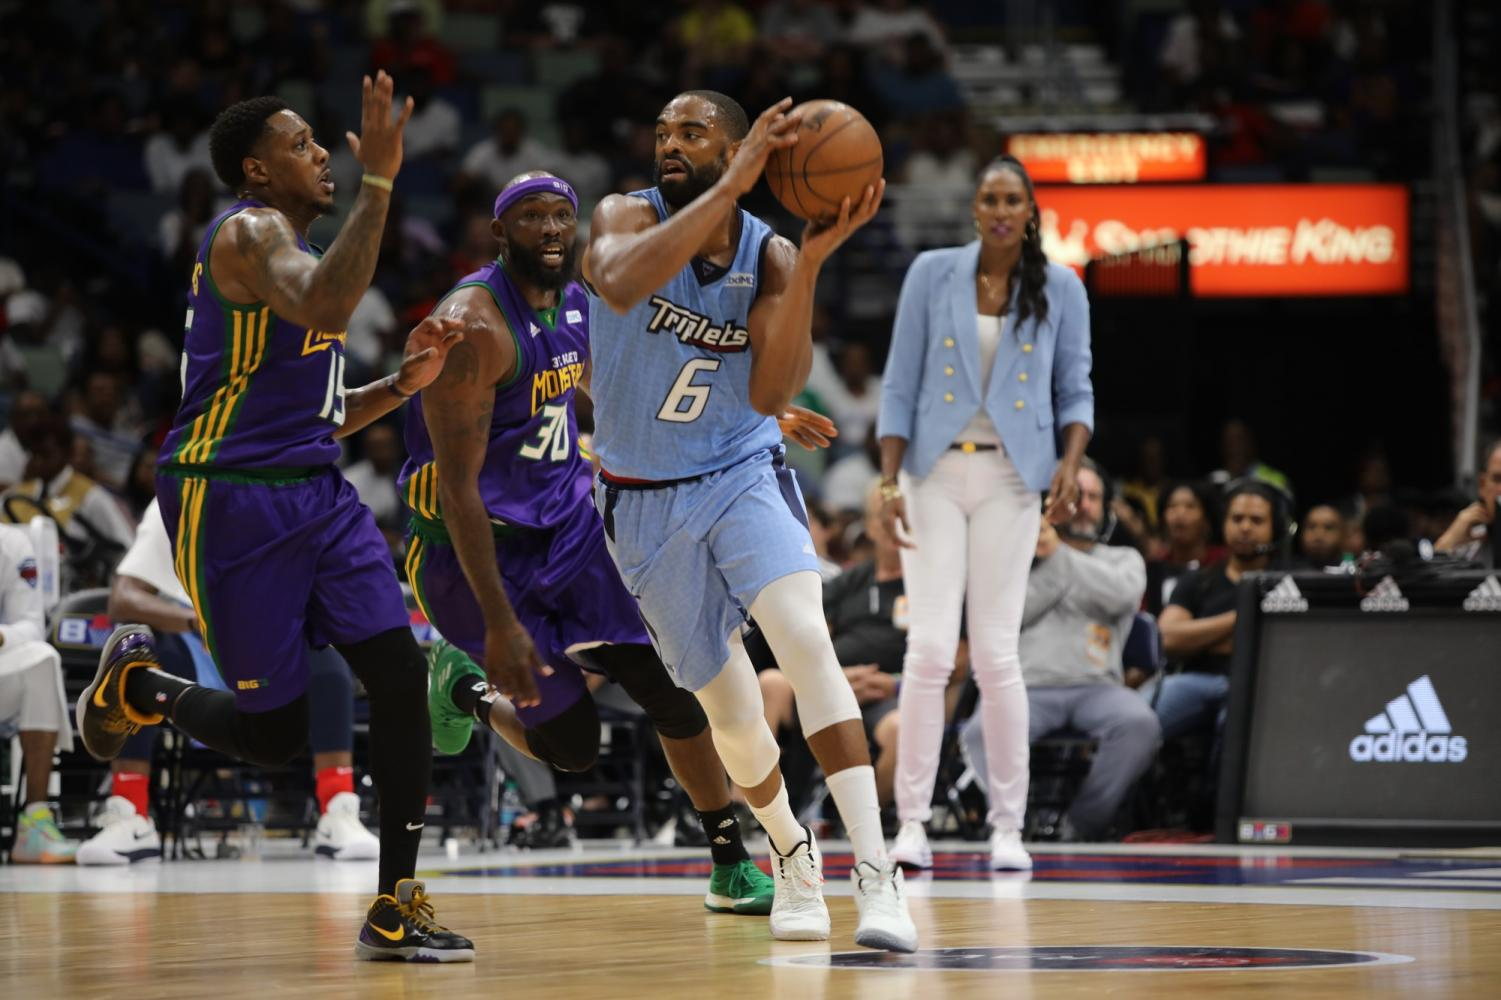 Triplet%27s+Allen+Anderson+evades+Mario+Chalmers+from+the+3+Headed+Monsters+at+the+BIG3+playoffs+on+August+25%2C+2019.+The+Triplets+won+50-39.+Photo+credit%3A+Andres+Fuentes